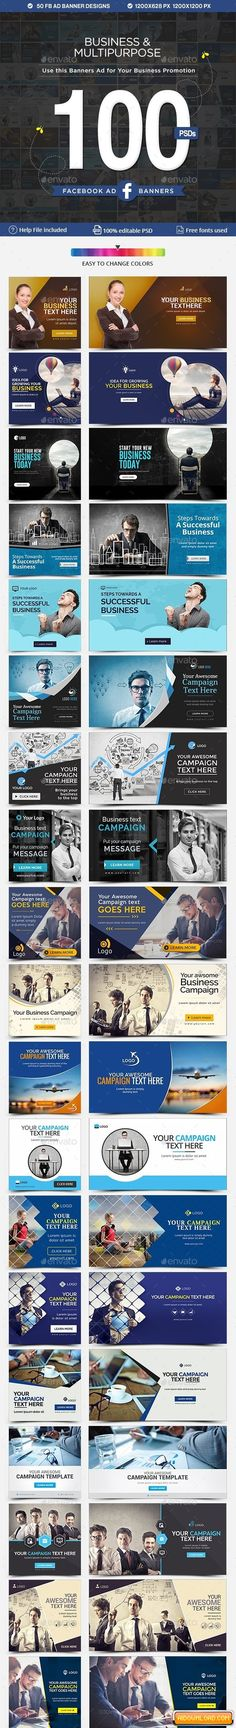 Facebook Ad Banners – 50 Designs – 2 Sizes Each Free Download | Free Graphic Templates, Fonts, Logos & Icons, PSD, AI